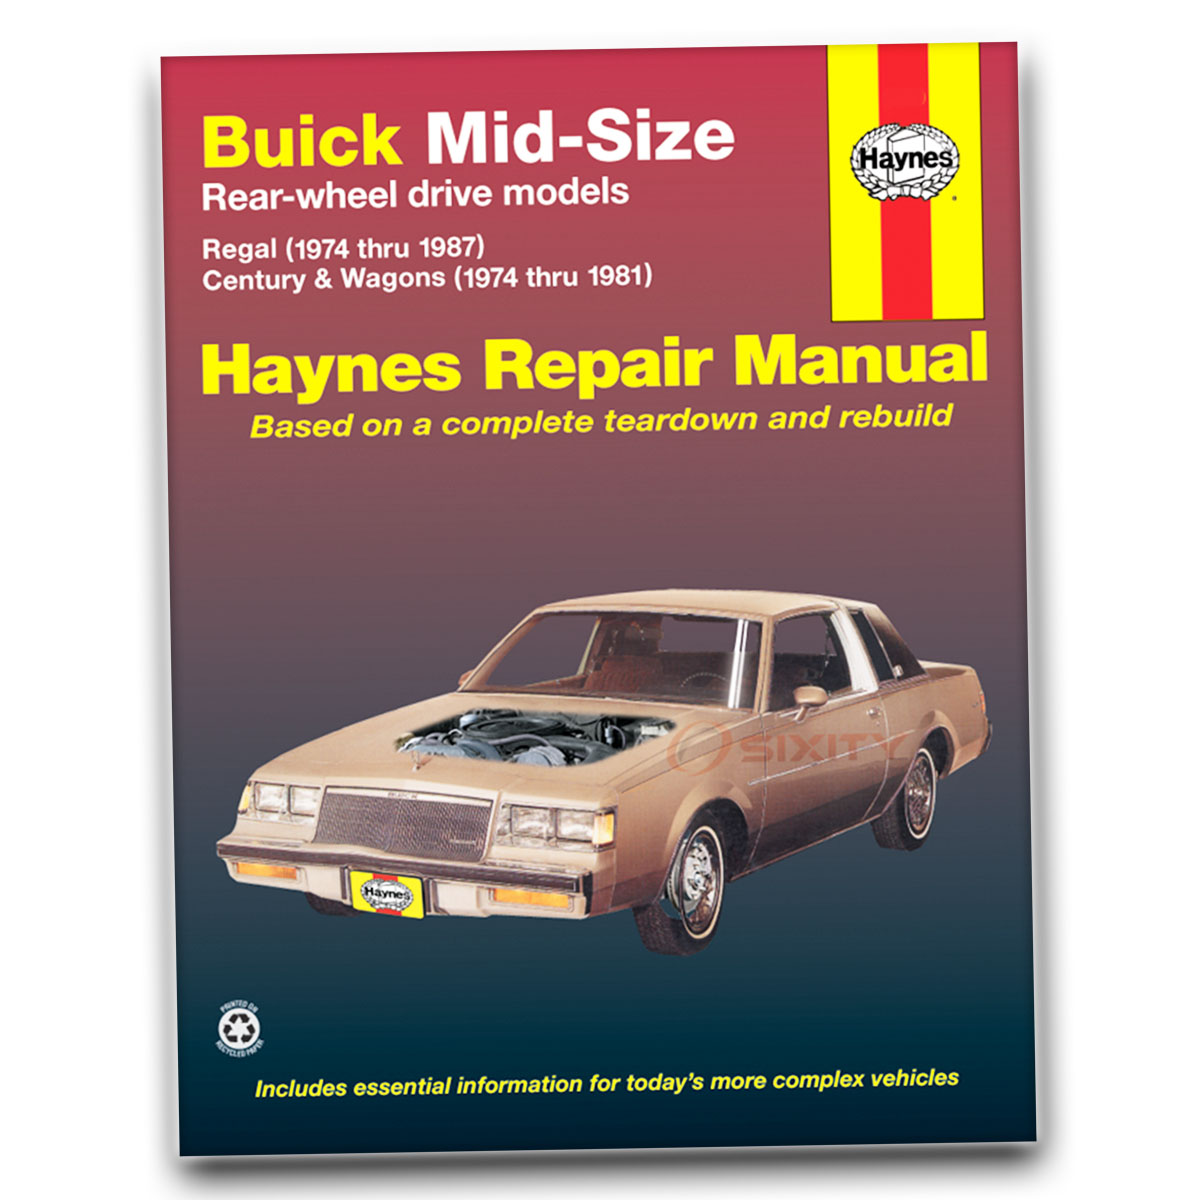 buick regal haynes repair manual sport gnx grand national t type buick regal haynes repair manual sport gnx grand national t type limited pn